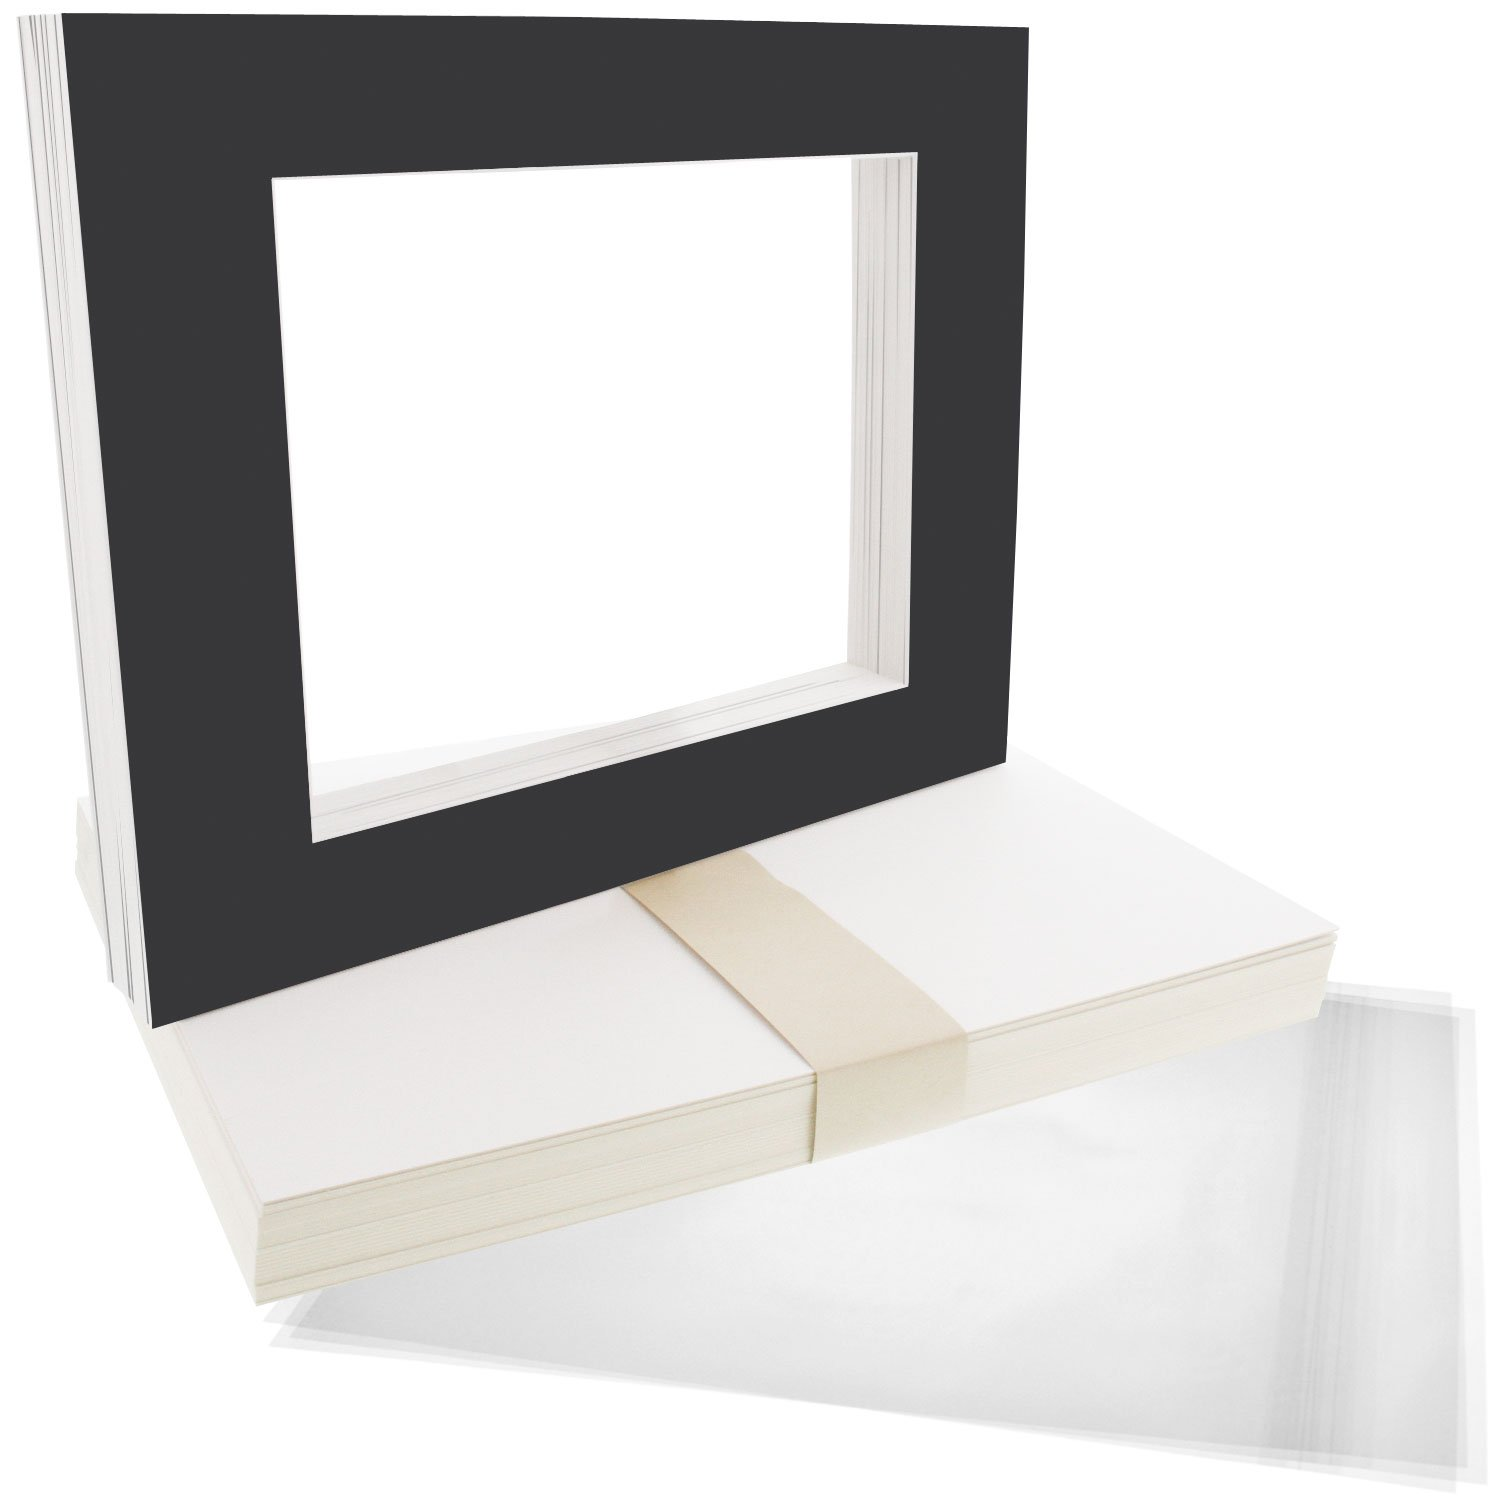 US Art Supply Art Mats Acid-Free Pre-Cut 16x20 Black Picture Mat Matte Sets. Includes a Pack of 25 White Core Bevel Cut Mattes for 11x14 Photos, Pack of 25 Backers & 25 Clear Sleeve Bags by US Art Supply (Image #1)